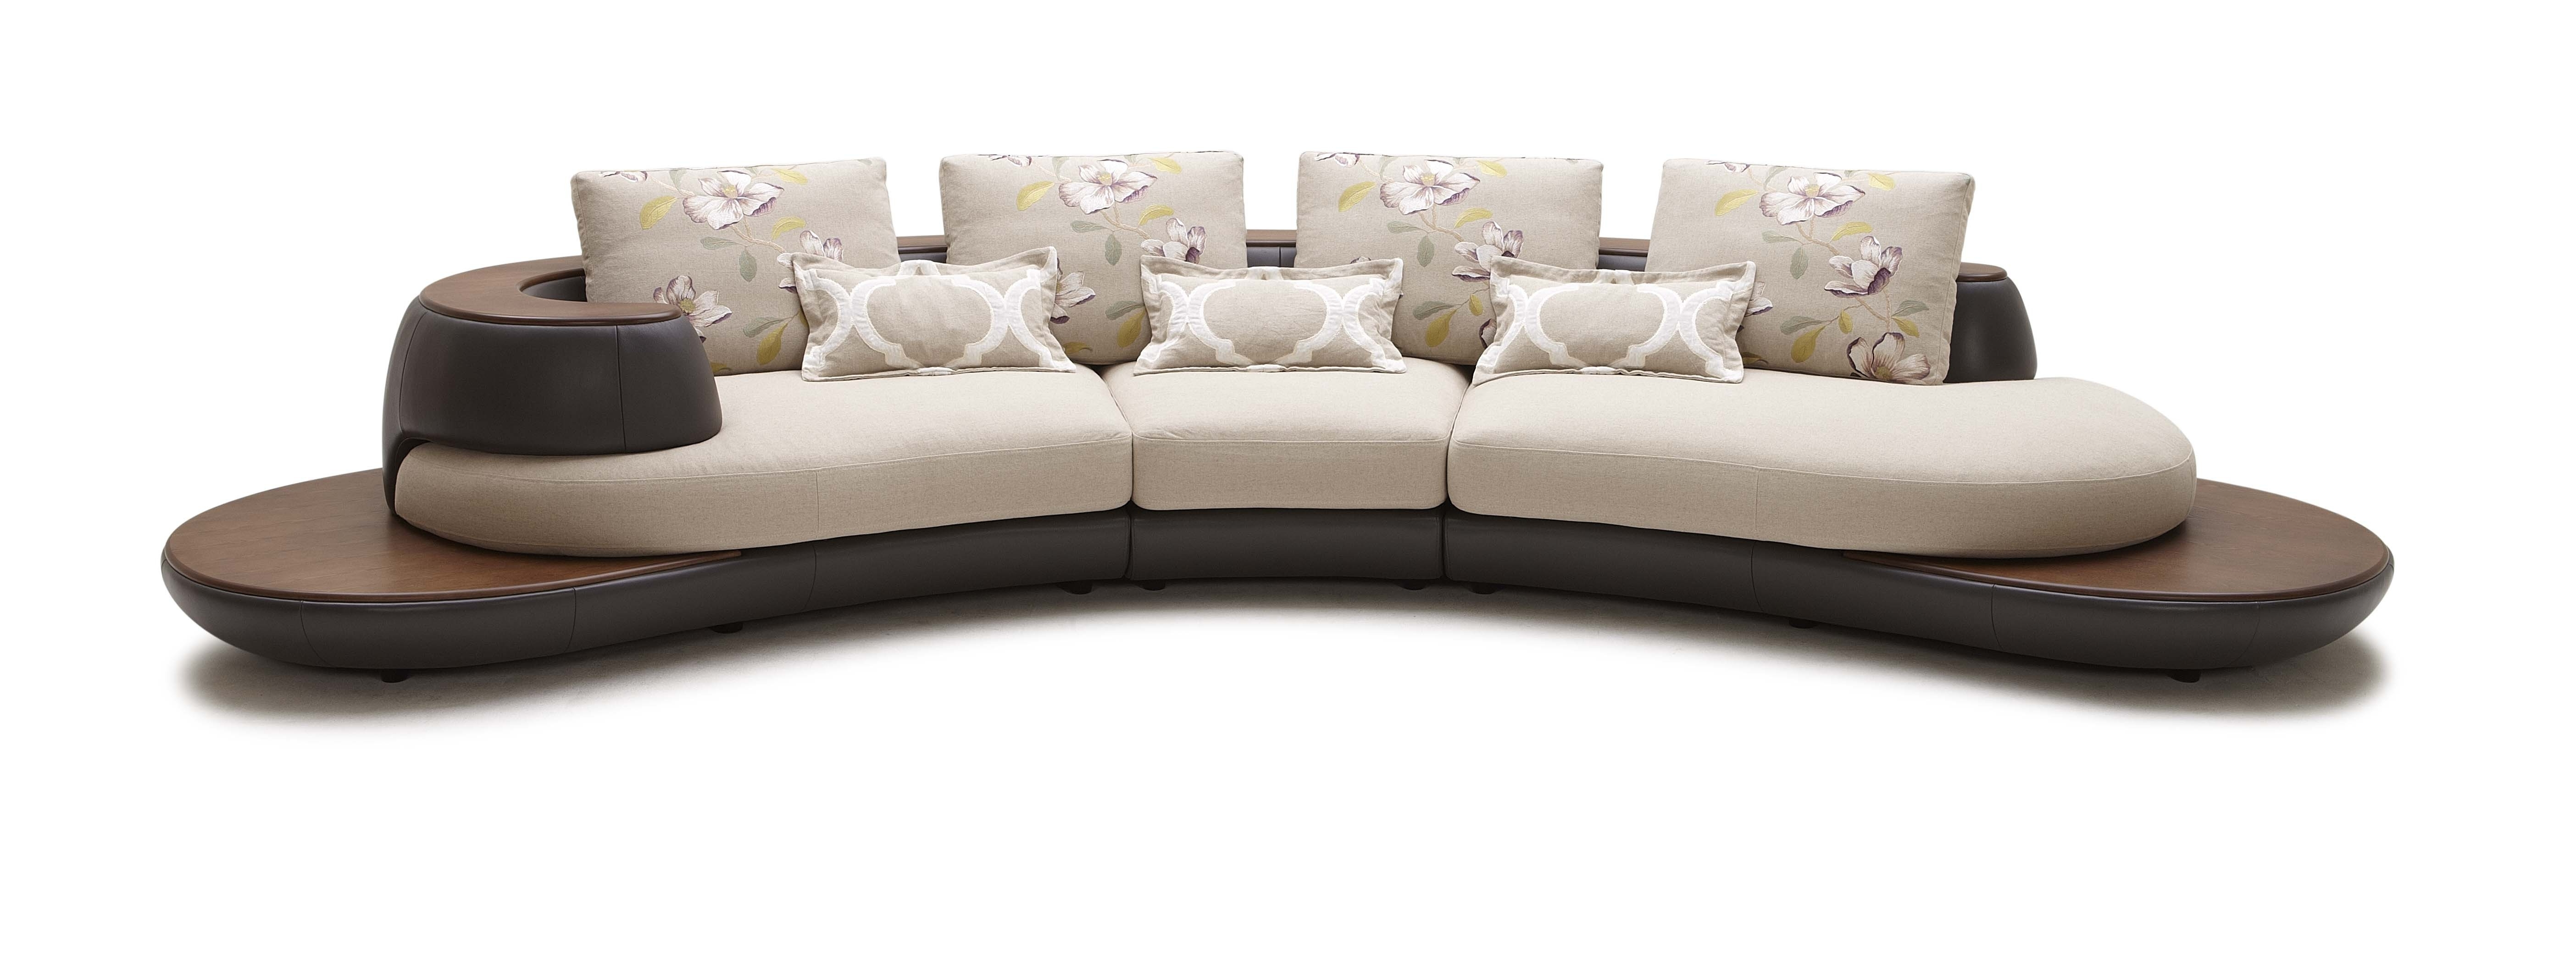 Most Up To Date Modern Unusual Sofa Design Superb Living Room Furniture Best Type Inside Unusual Sofa (View 12 of 20)